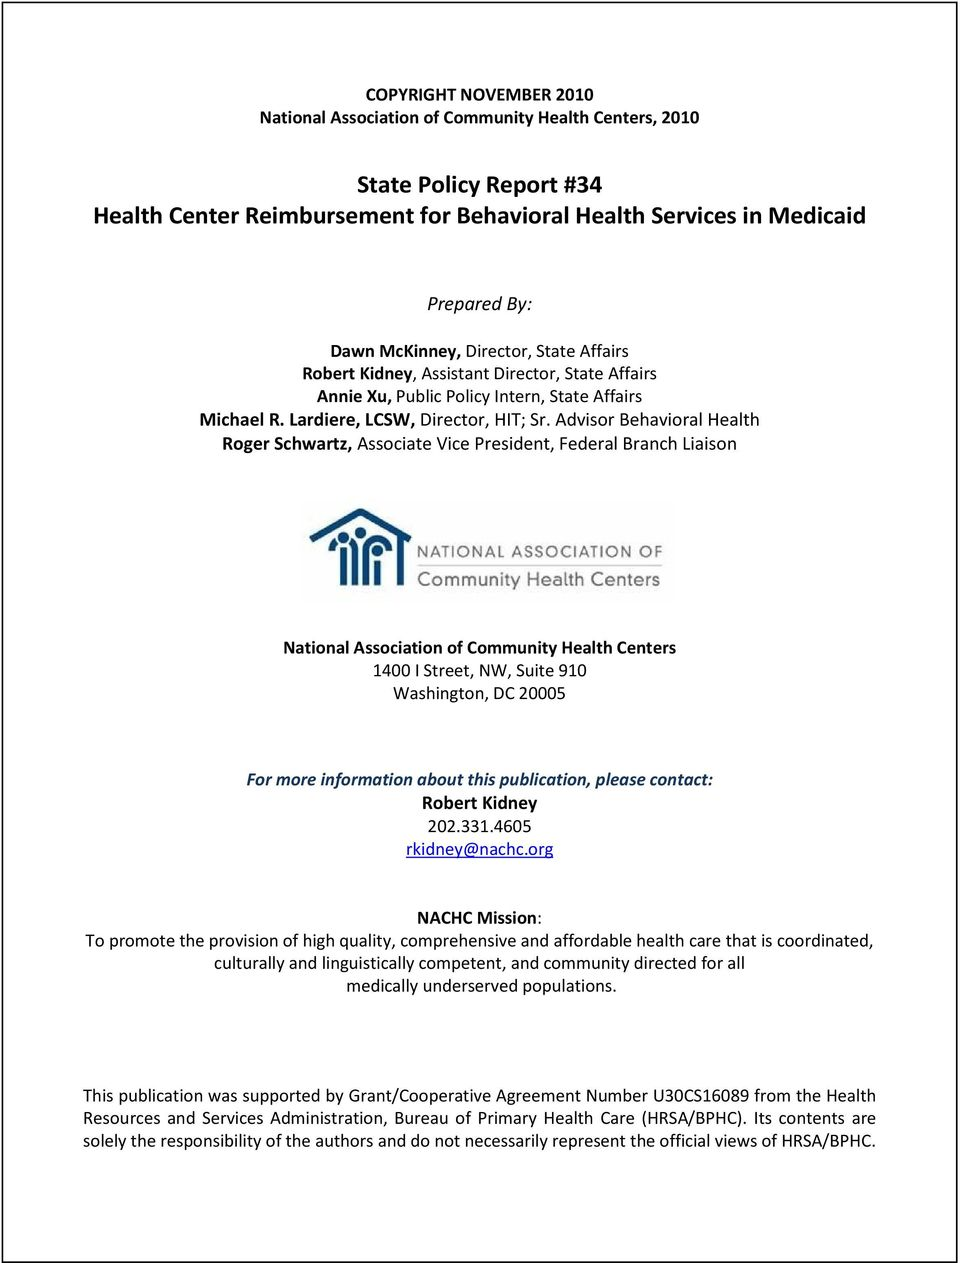 Advisor Behavioral Health Roger Schwartz, Associate Vice President, Federal Branch Liaison National Association of Community Health Centers 1400 I Street, NW, Suite 910 Washington, DC 20005 For more